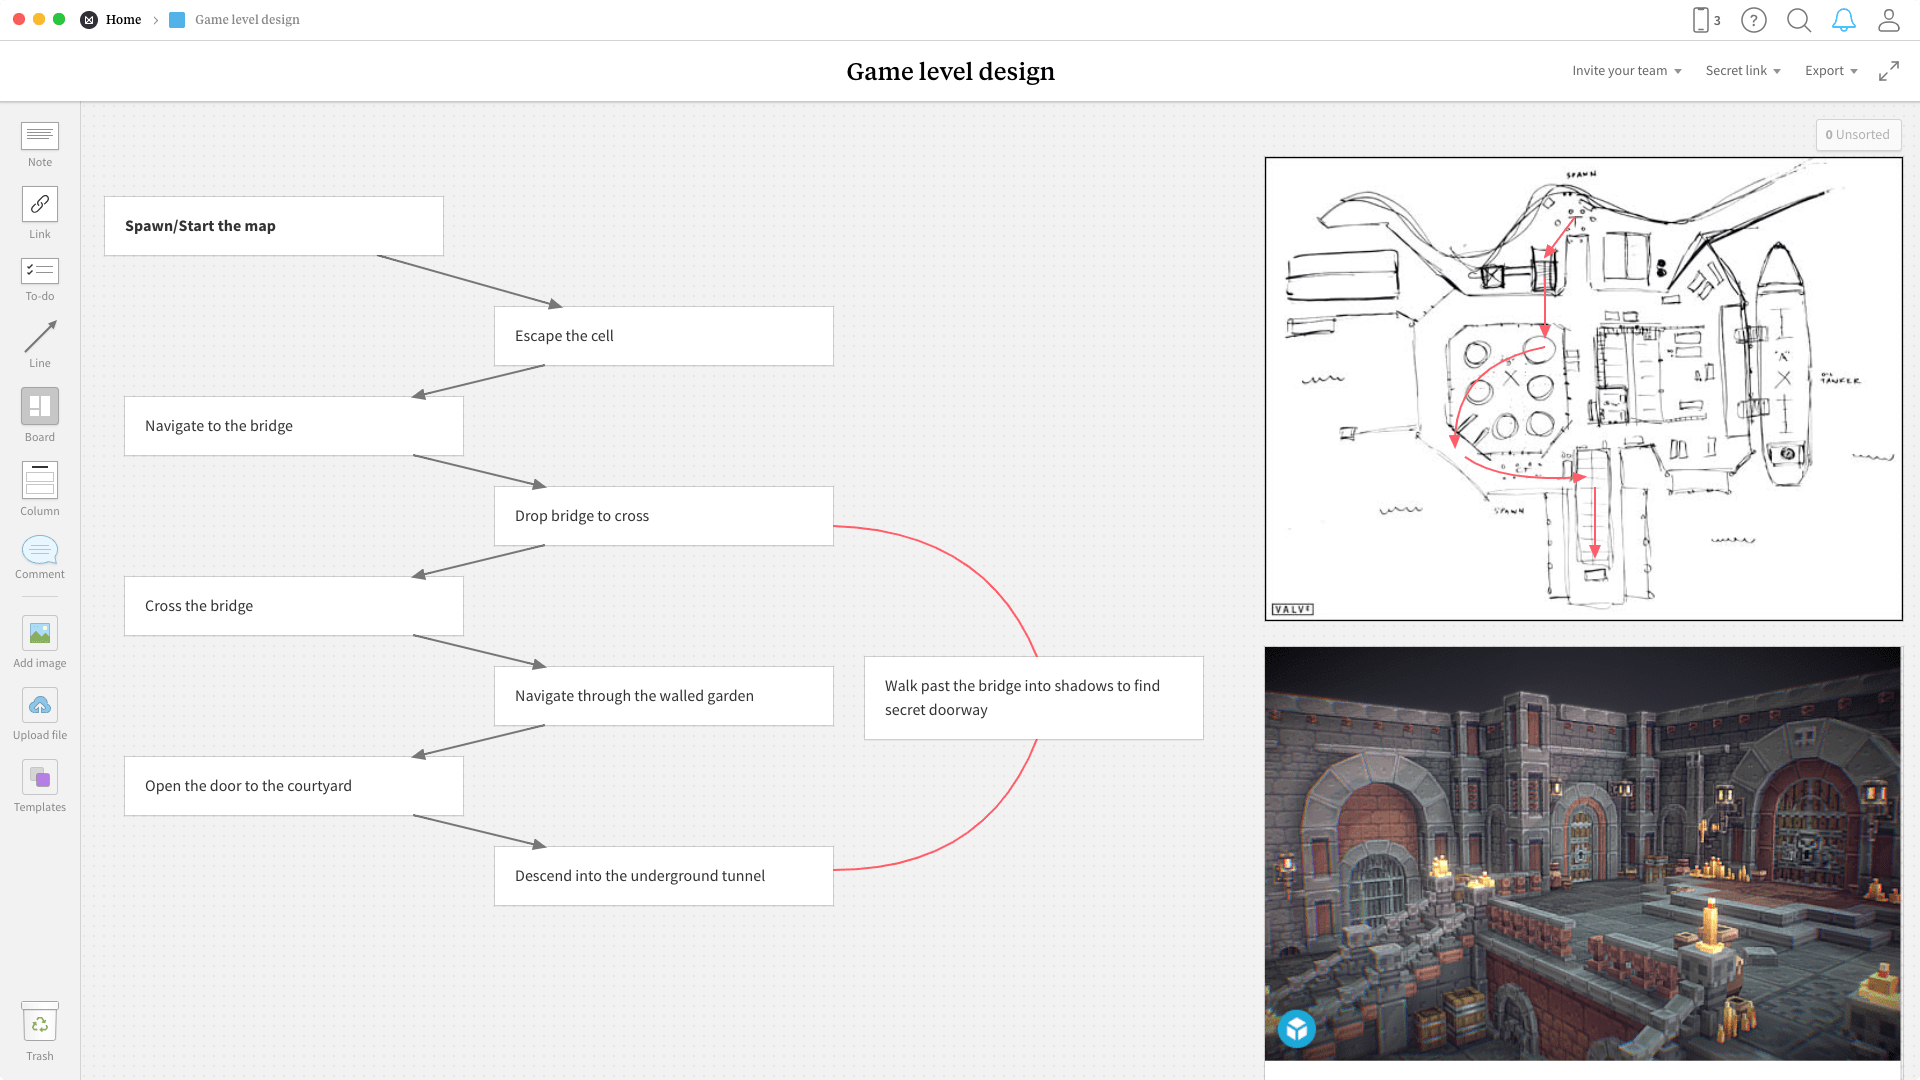 Completed Game Level Design template in Milanote app